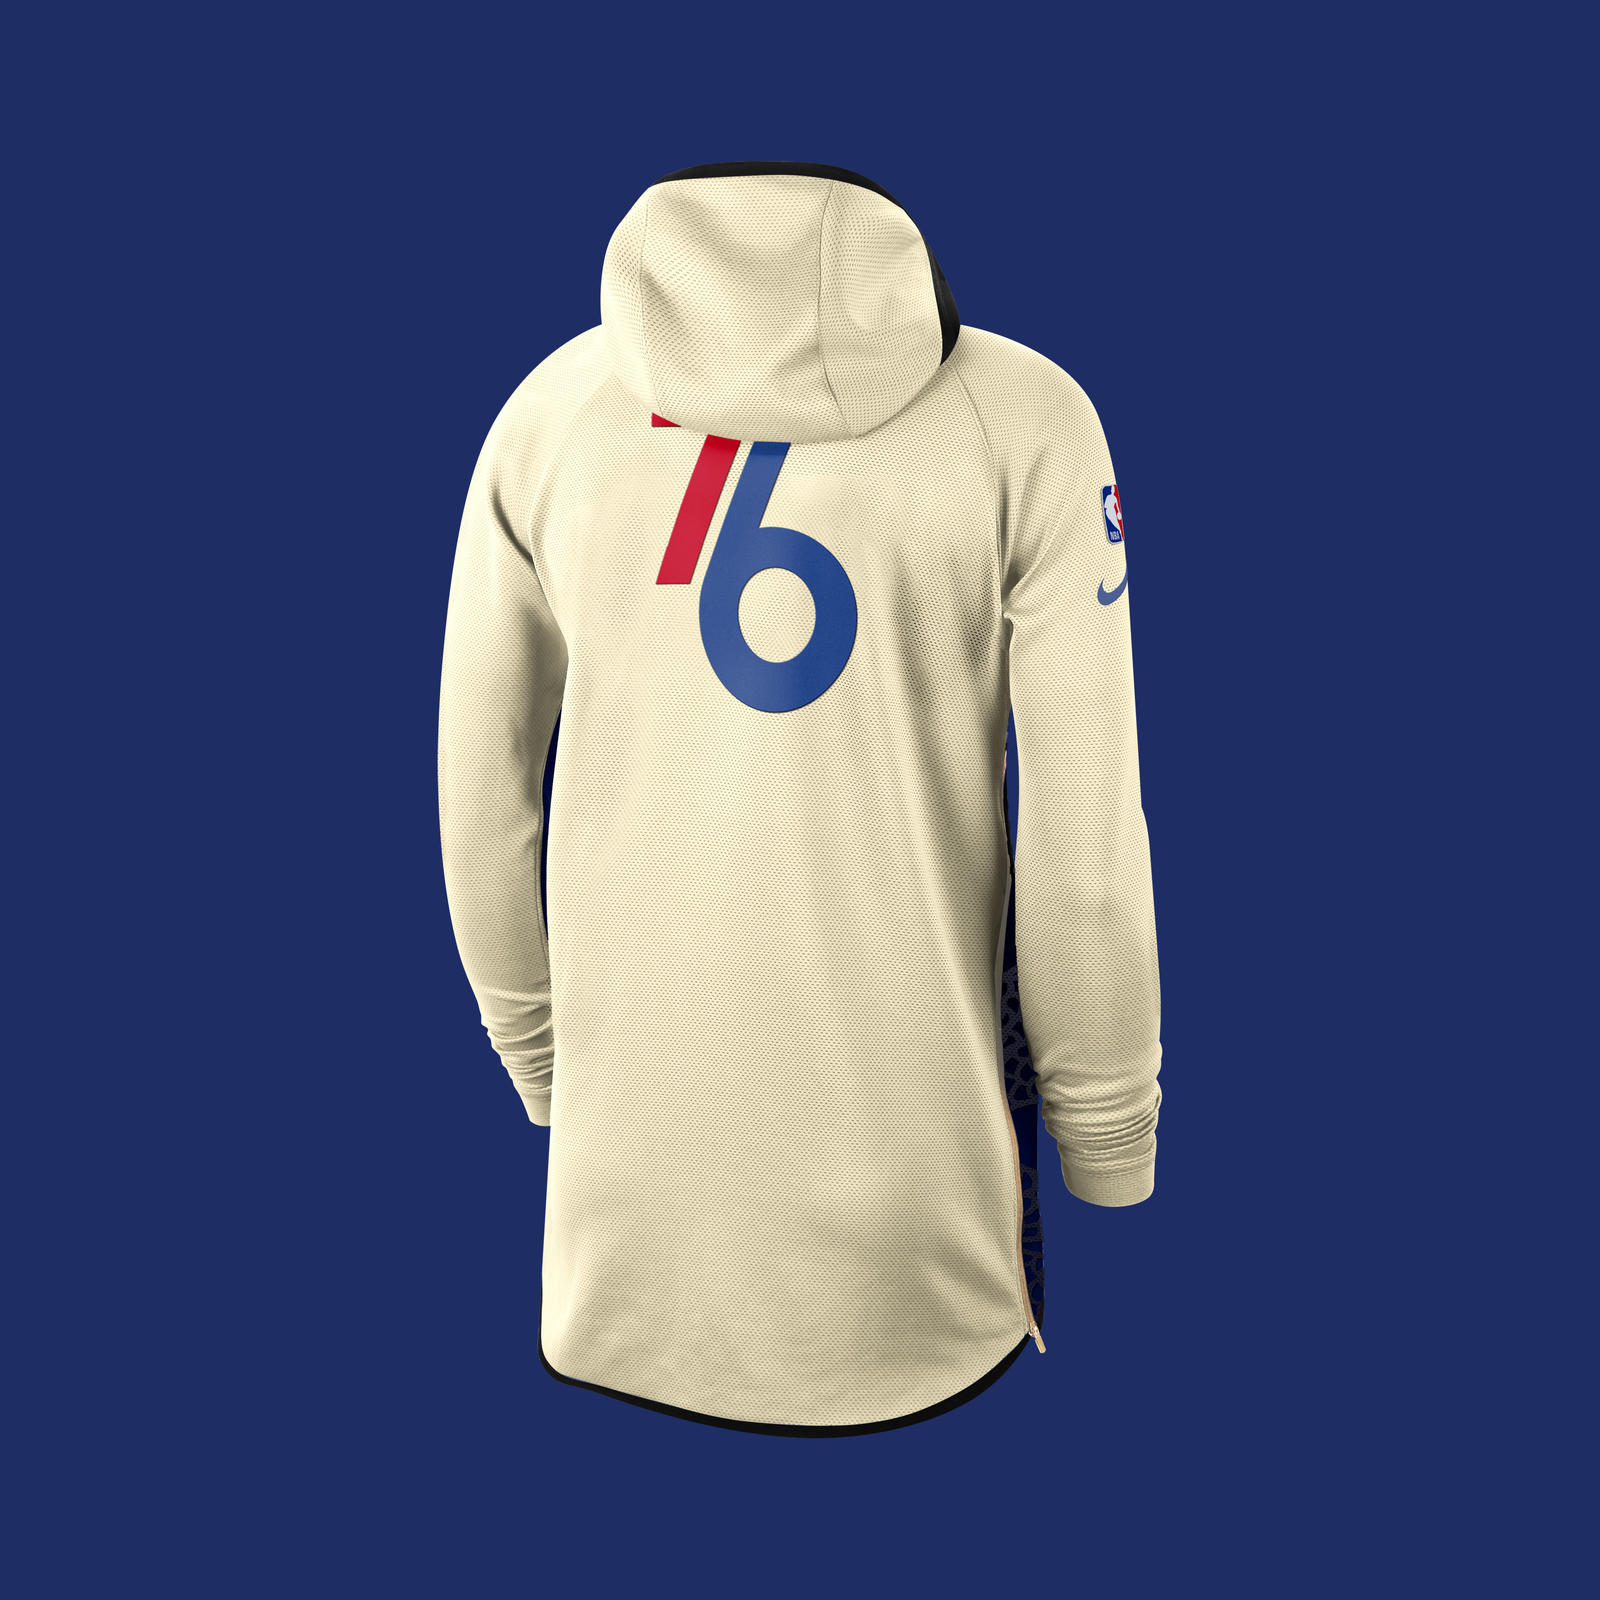 Nike NBA Earned Edition Showtime Hoodies 2019-20 Official Images 31